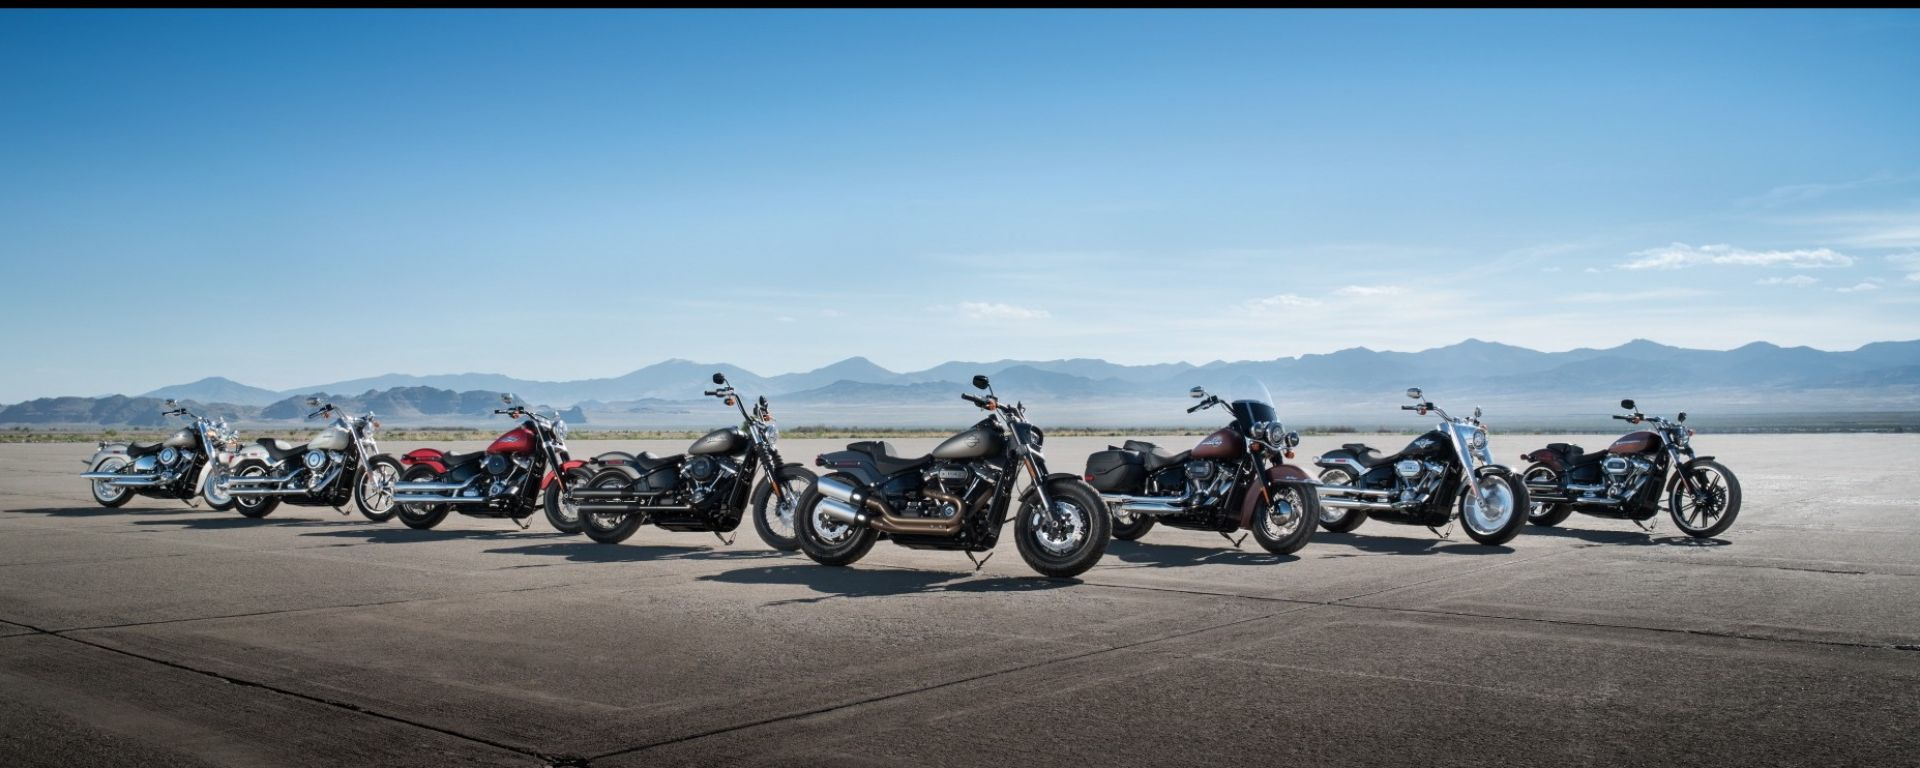 Harley Davidson: al MBE i nuovi Softail e la Battle of The King